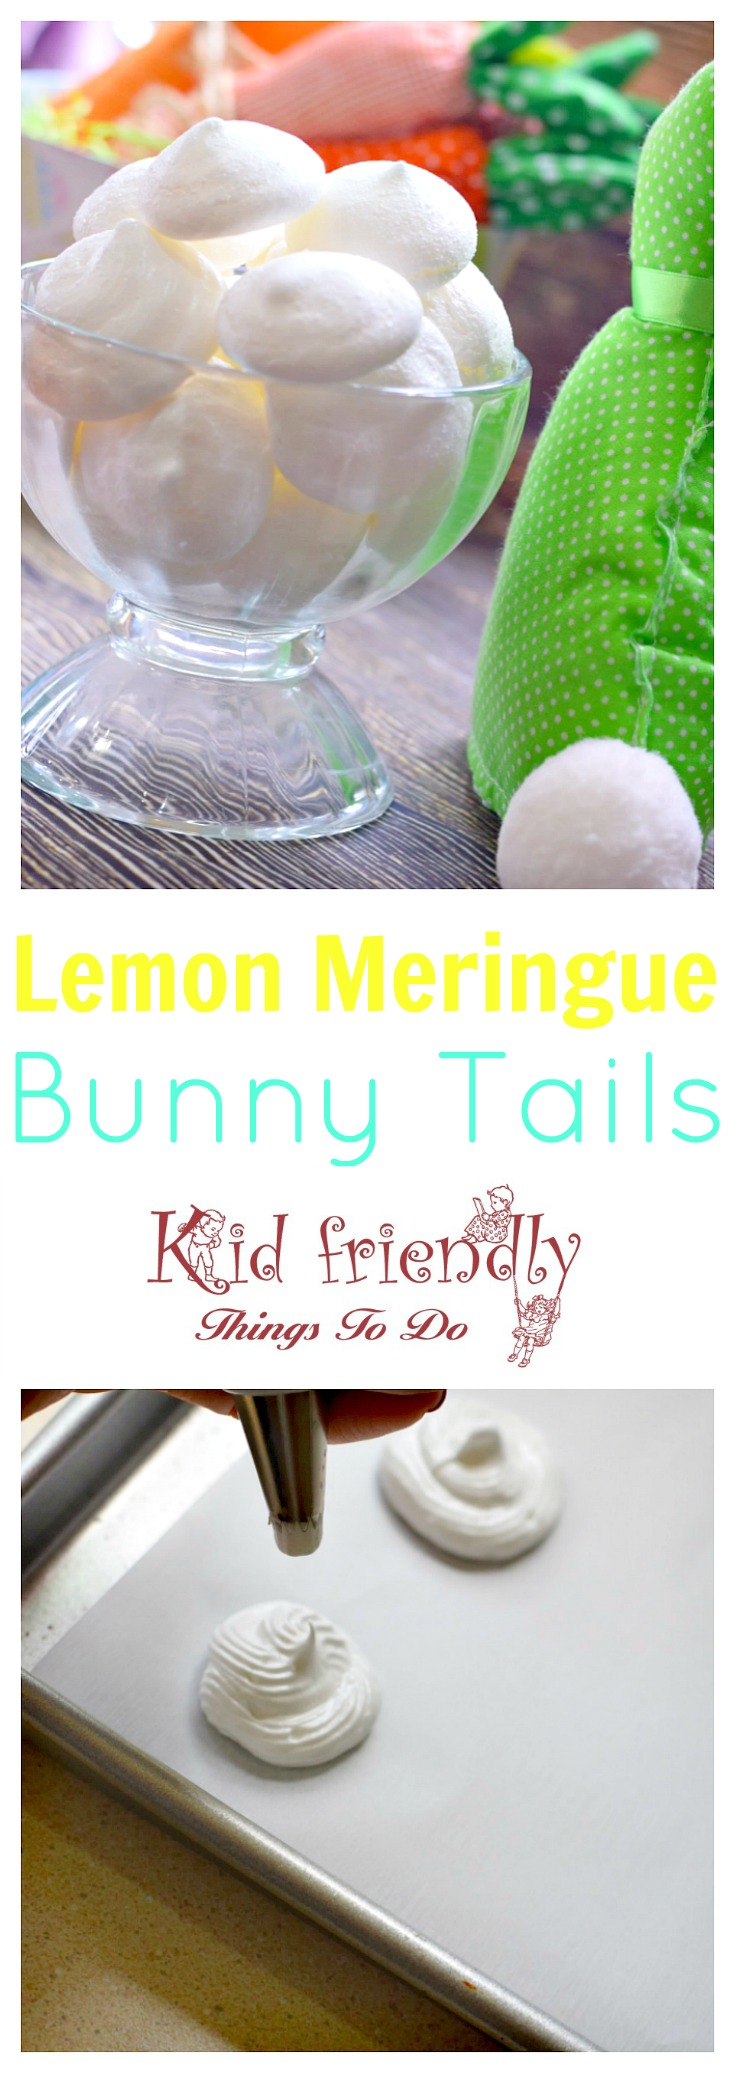 Lemon Meringue Bunny Tail Cookie Recipe for a fun Easter, spring or summer treat! www.kidfriendlythingstodo.com fun food idea for kids